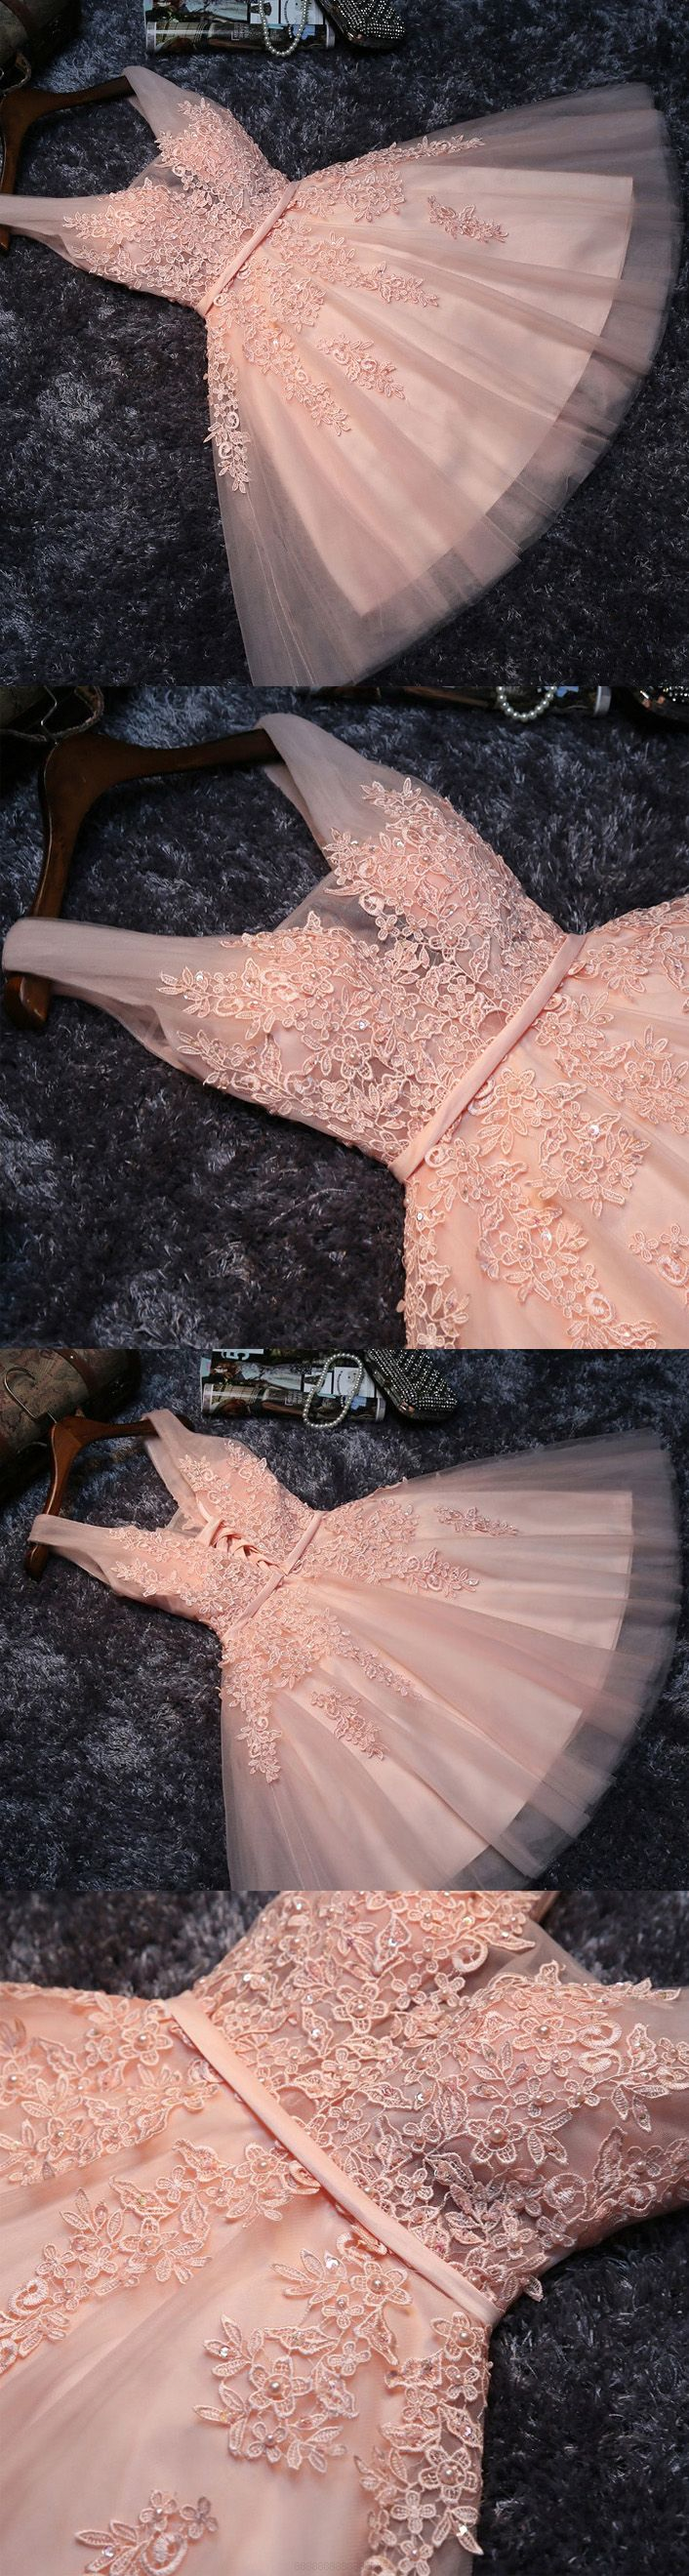 V-Neck Party Dresses, Pink Short Prom Dresses, 2017 Homecoming Dress ...